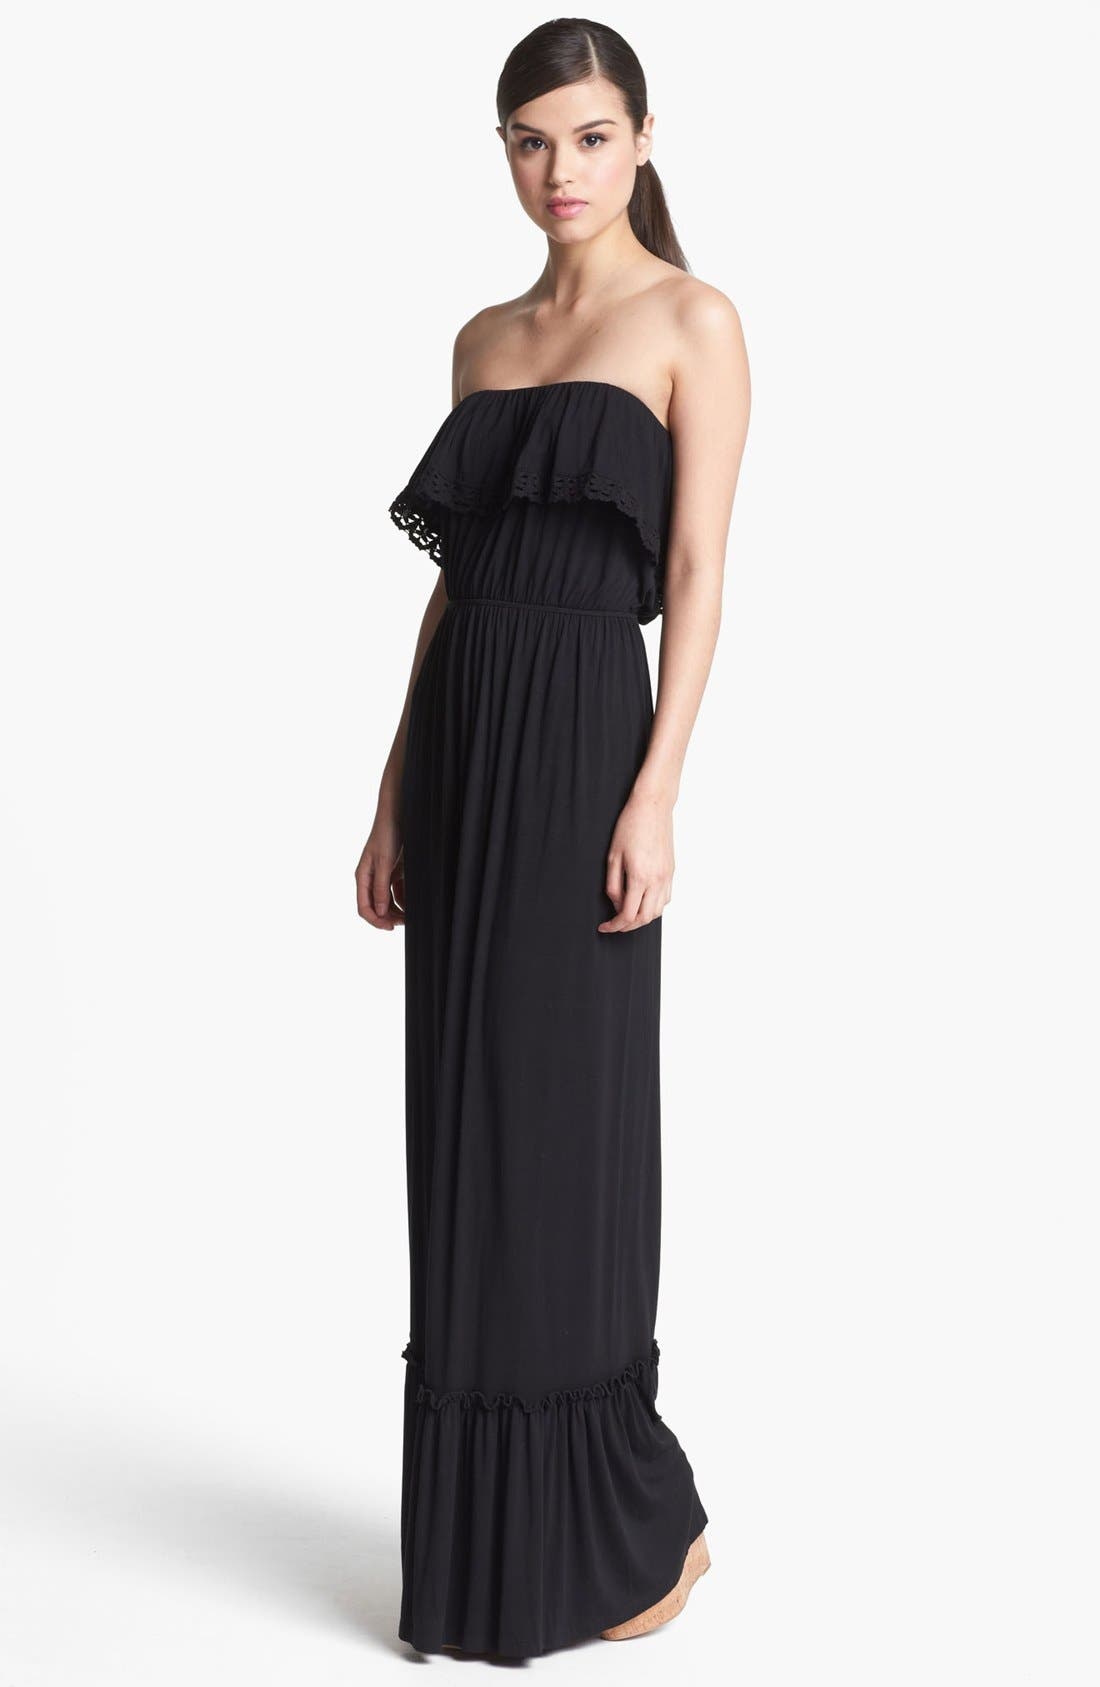 Felicity & Coco Ruffled Strapless Maxi Dress (Nordstrom Exclusive)